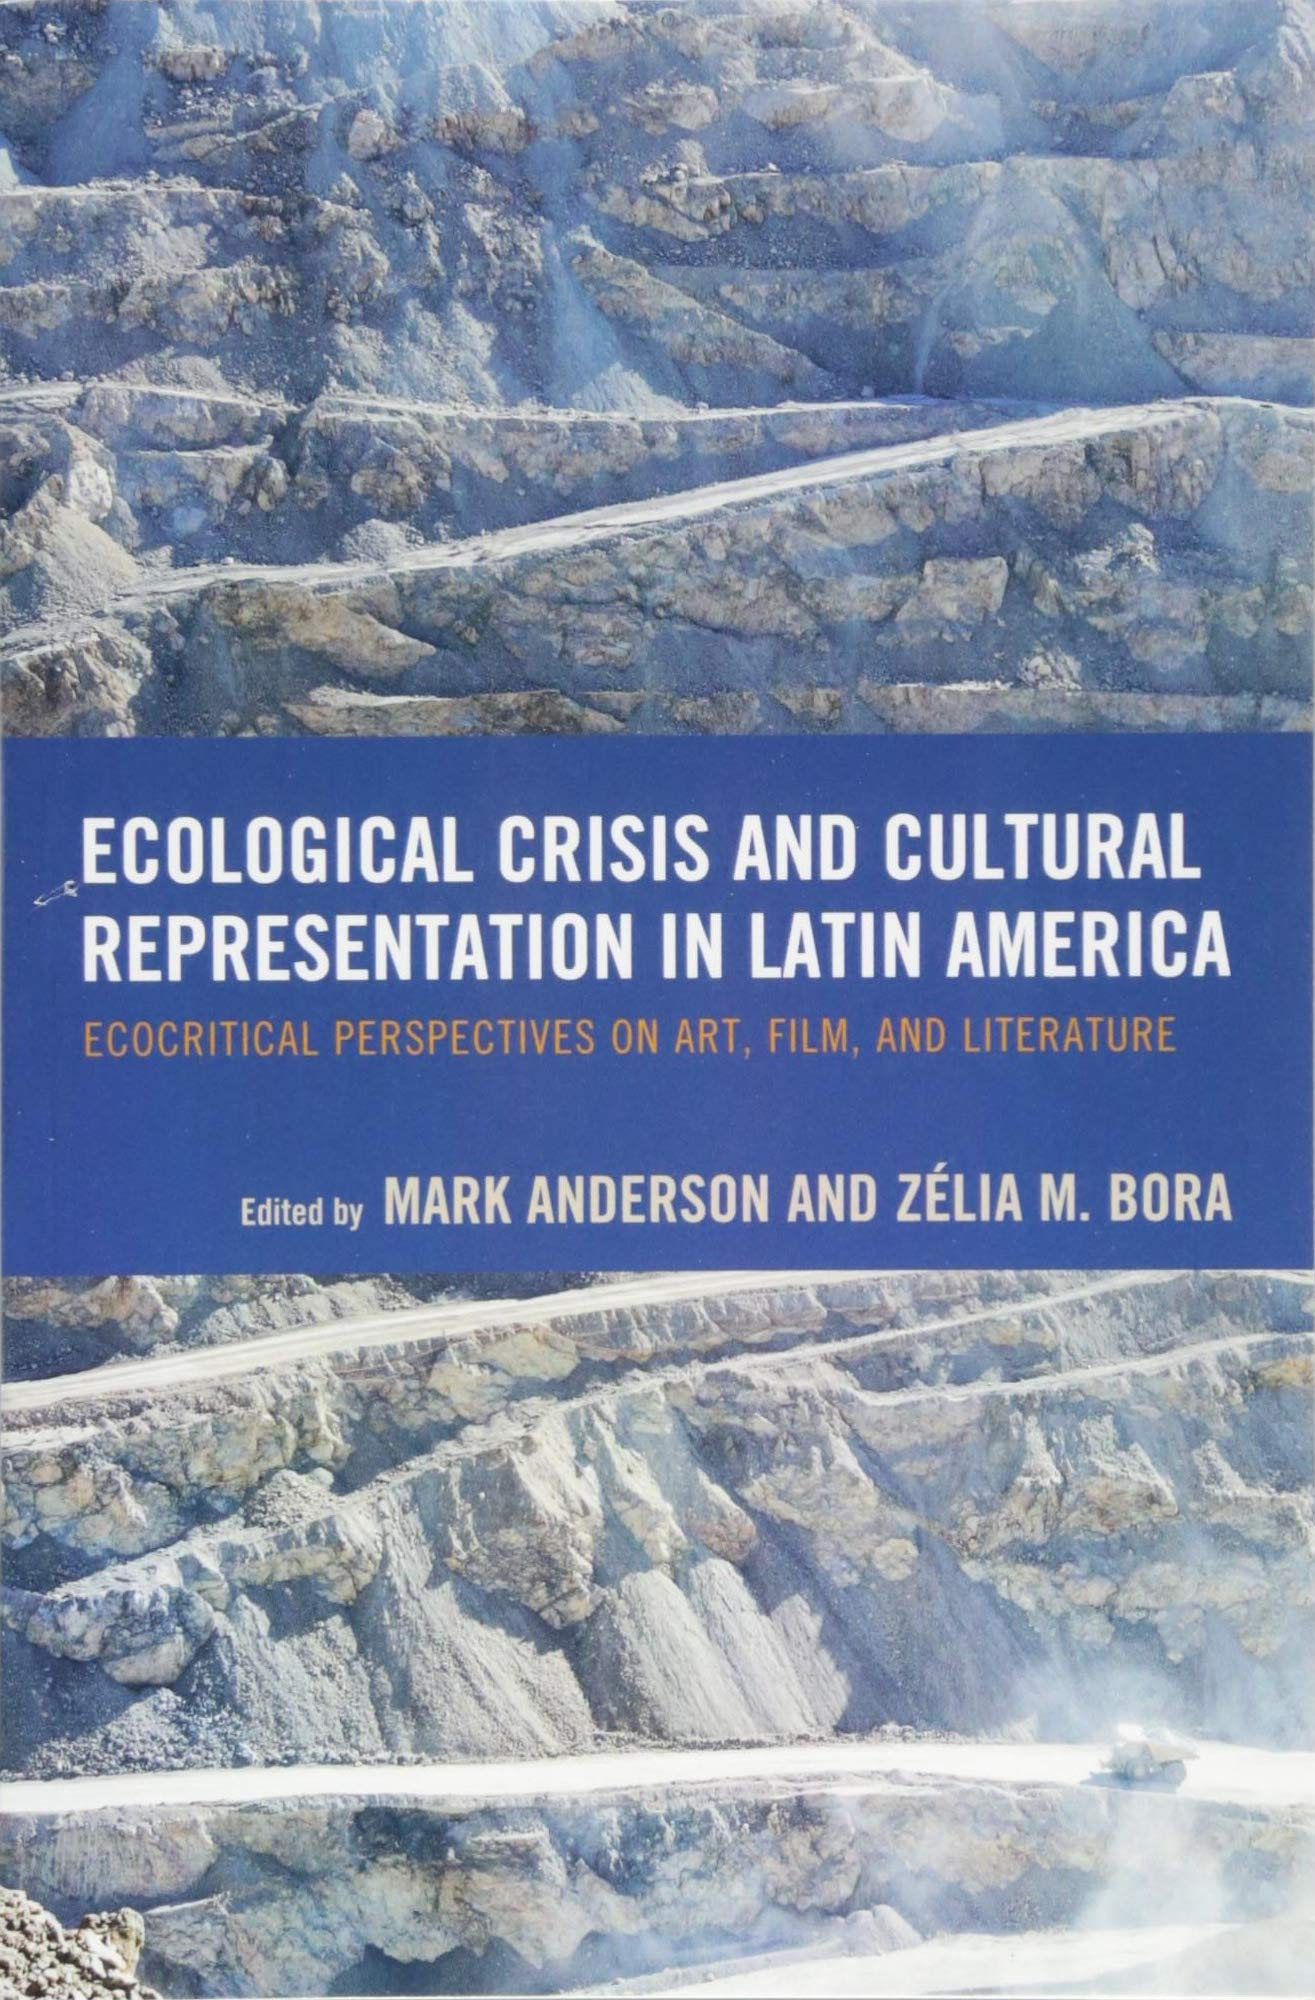 Download Ecological Crisis and Cultural Representation in Latin America: Ecocritical Perspectives on Art, Film, and Literature (Ecocritical Theory and Practice) ebook